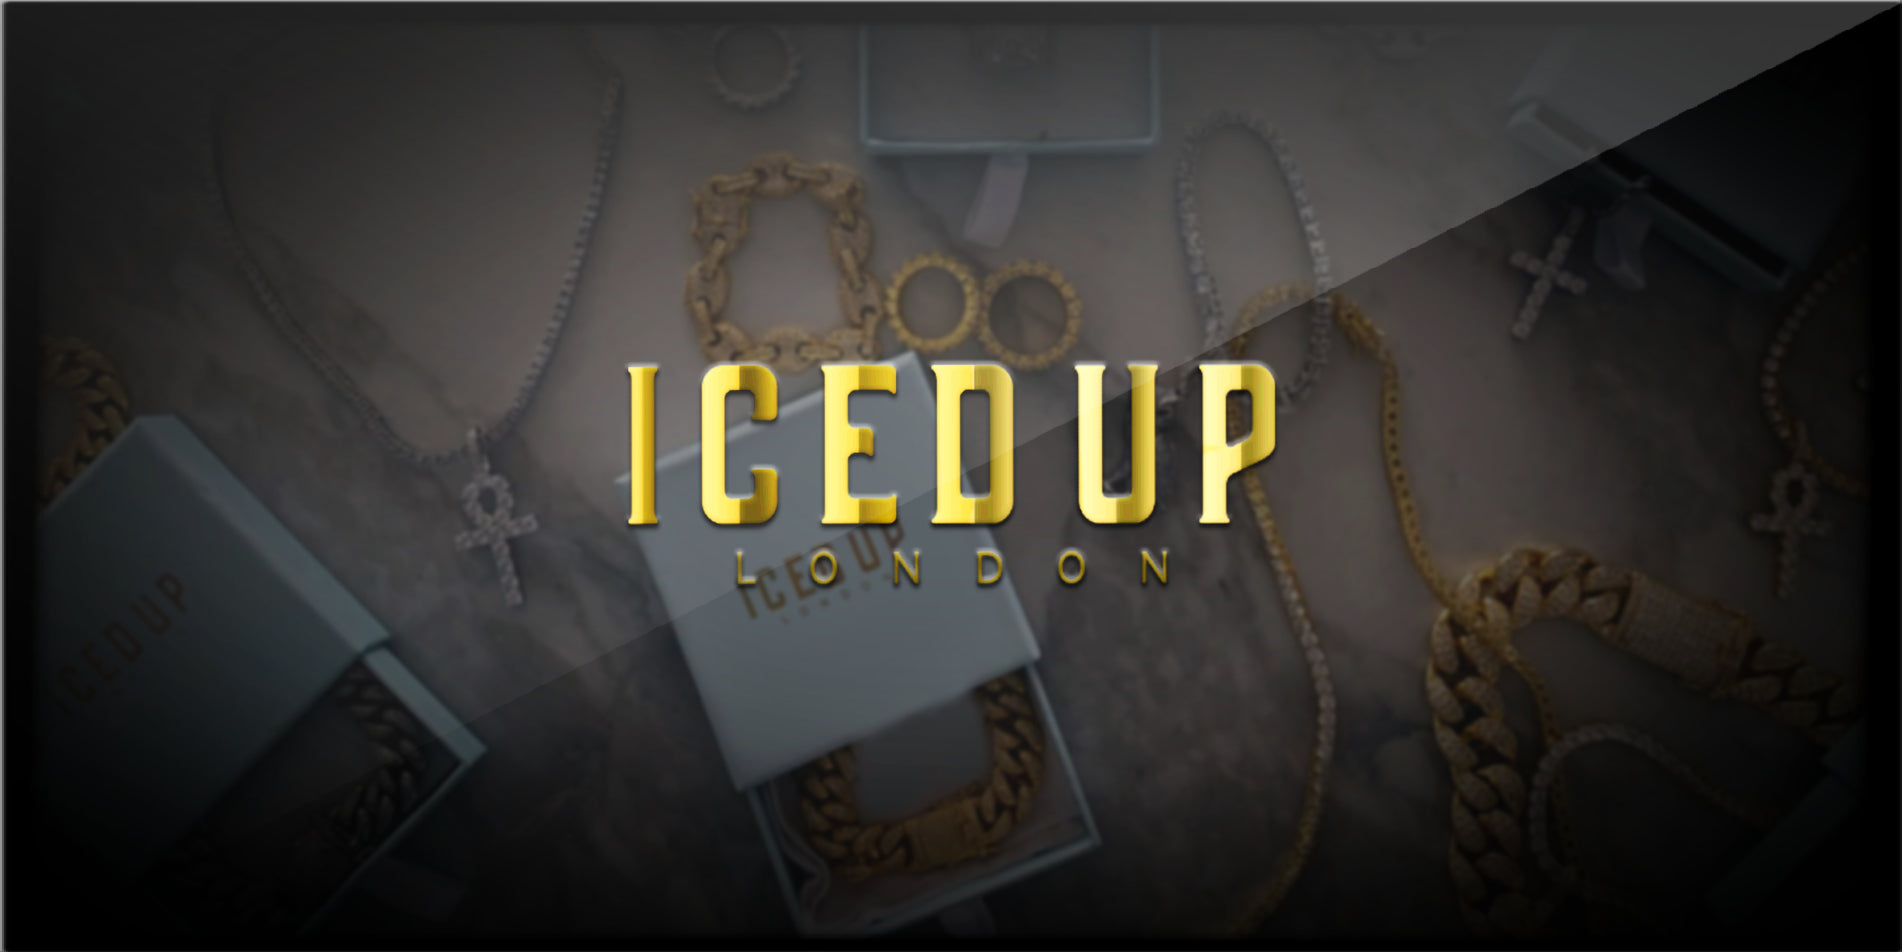 ICED OUT JEWELRY